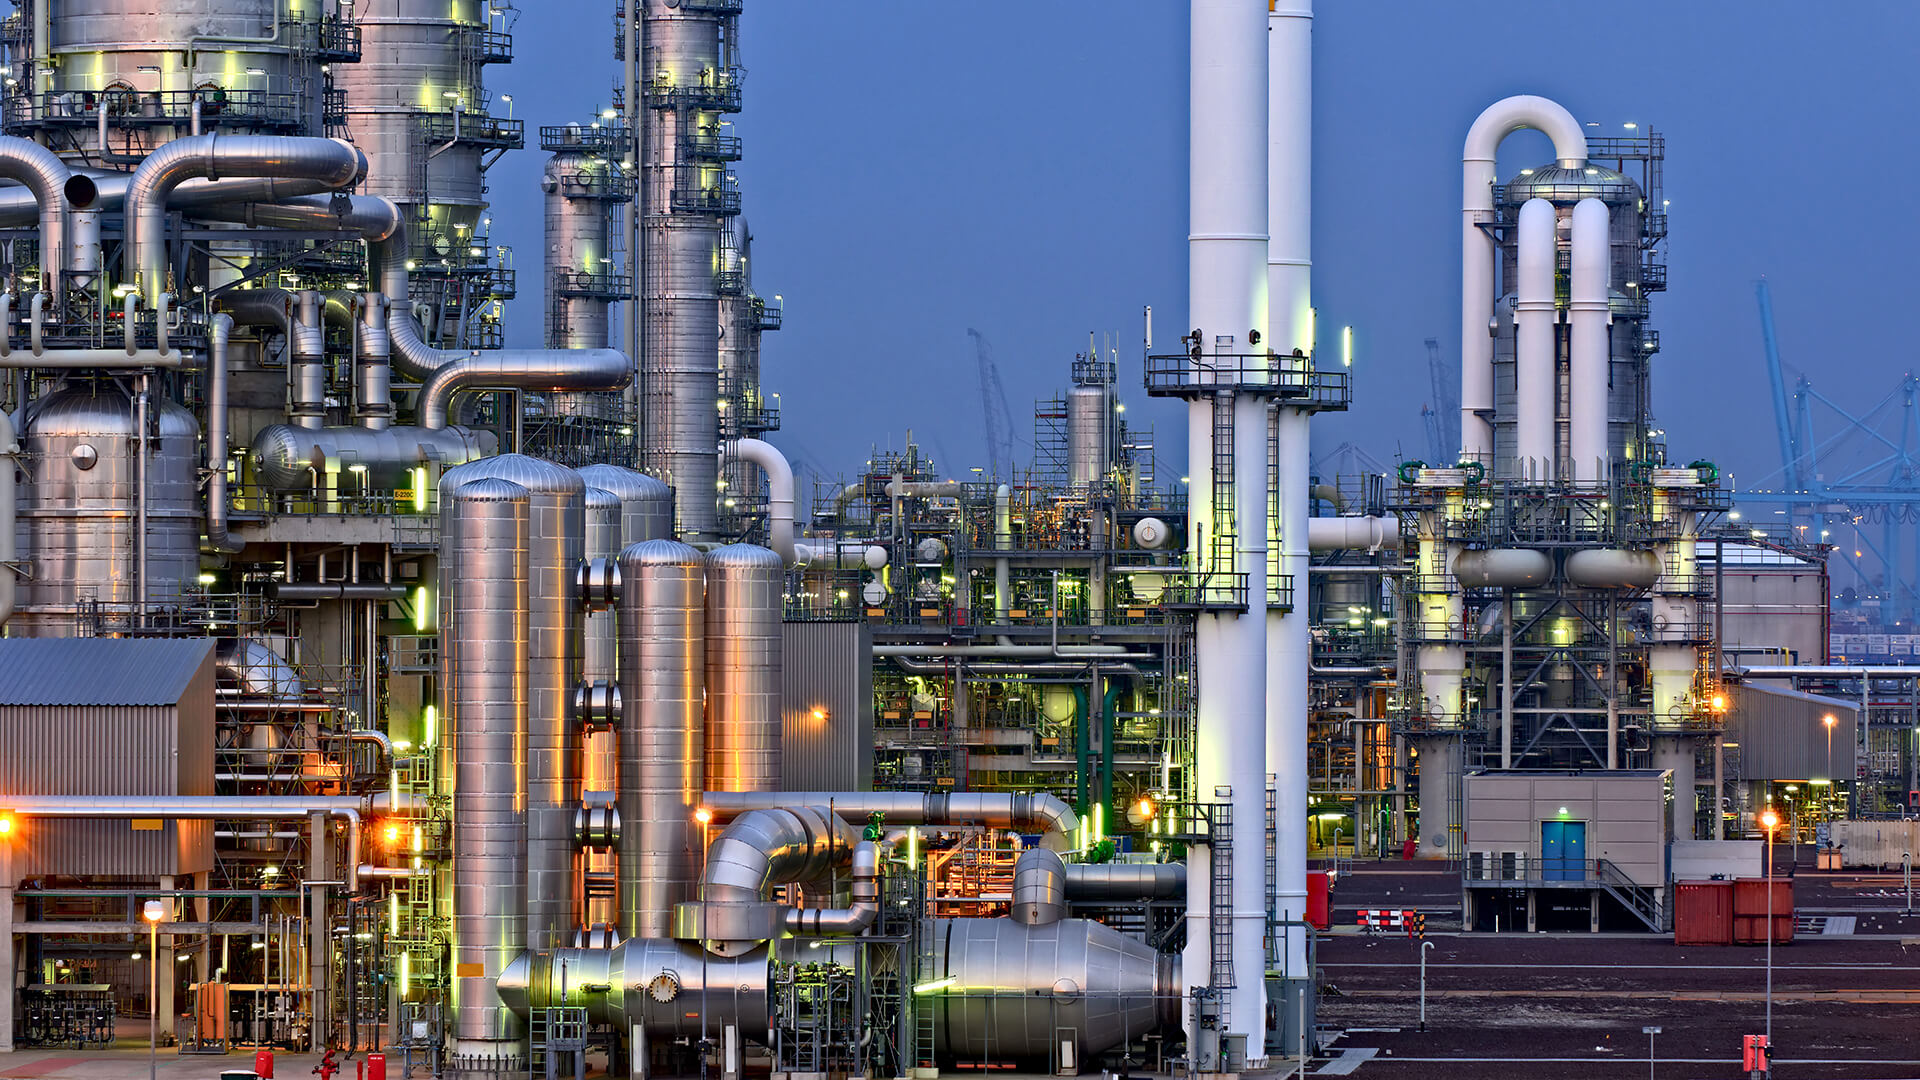 Check availability of industrial chemicals | Telko